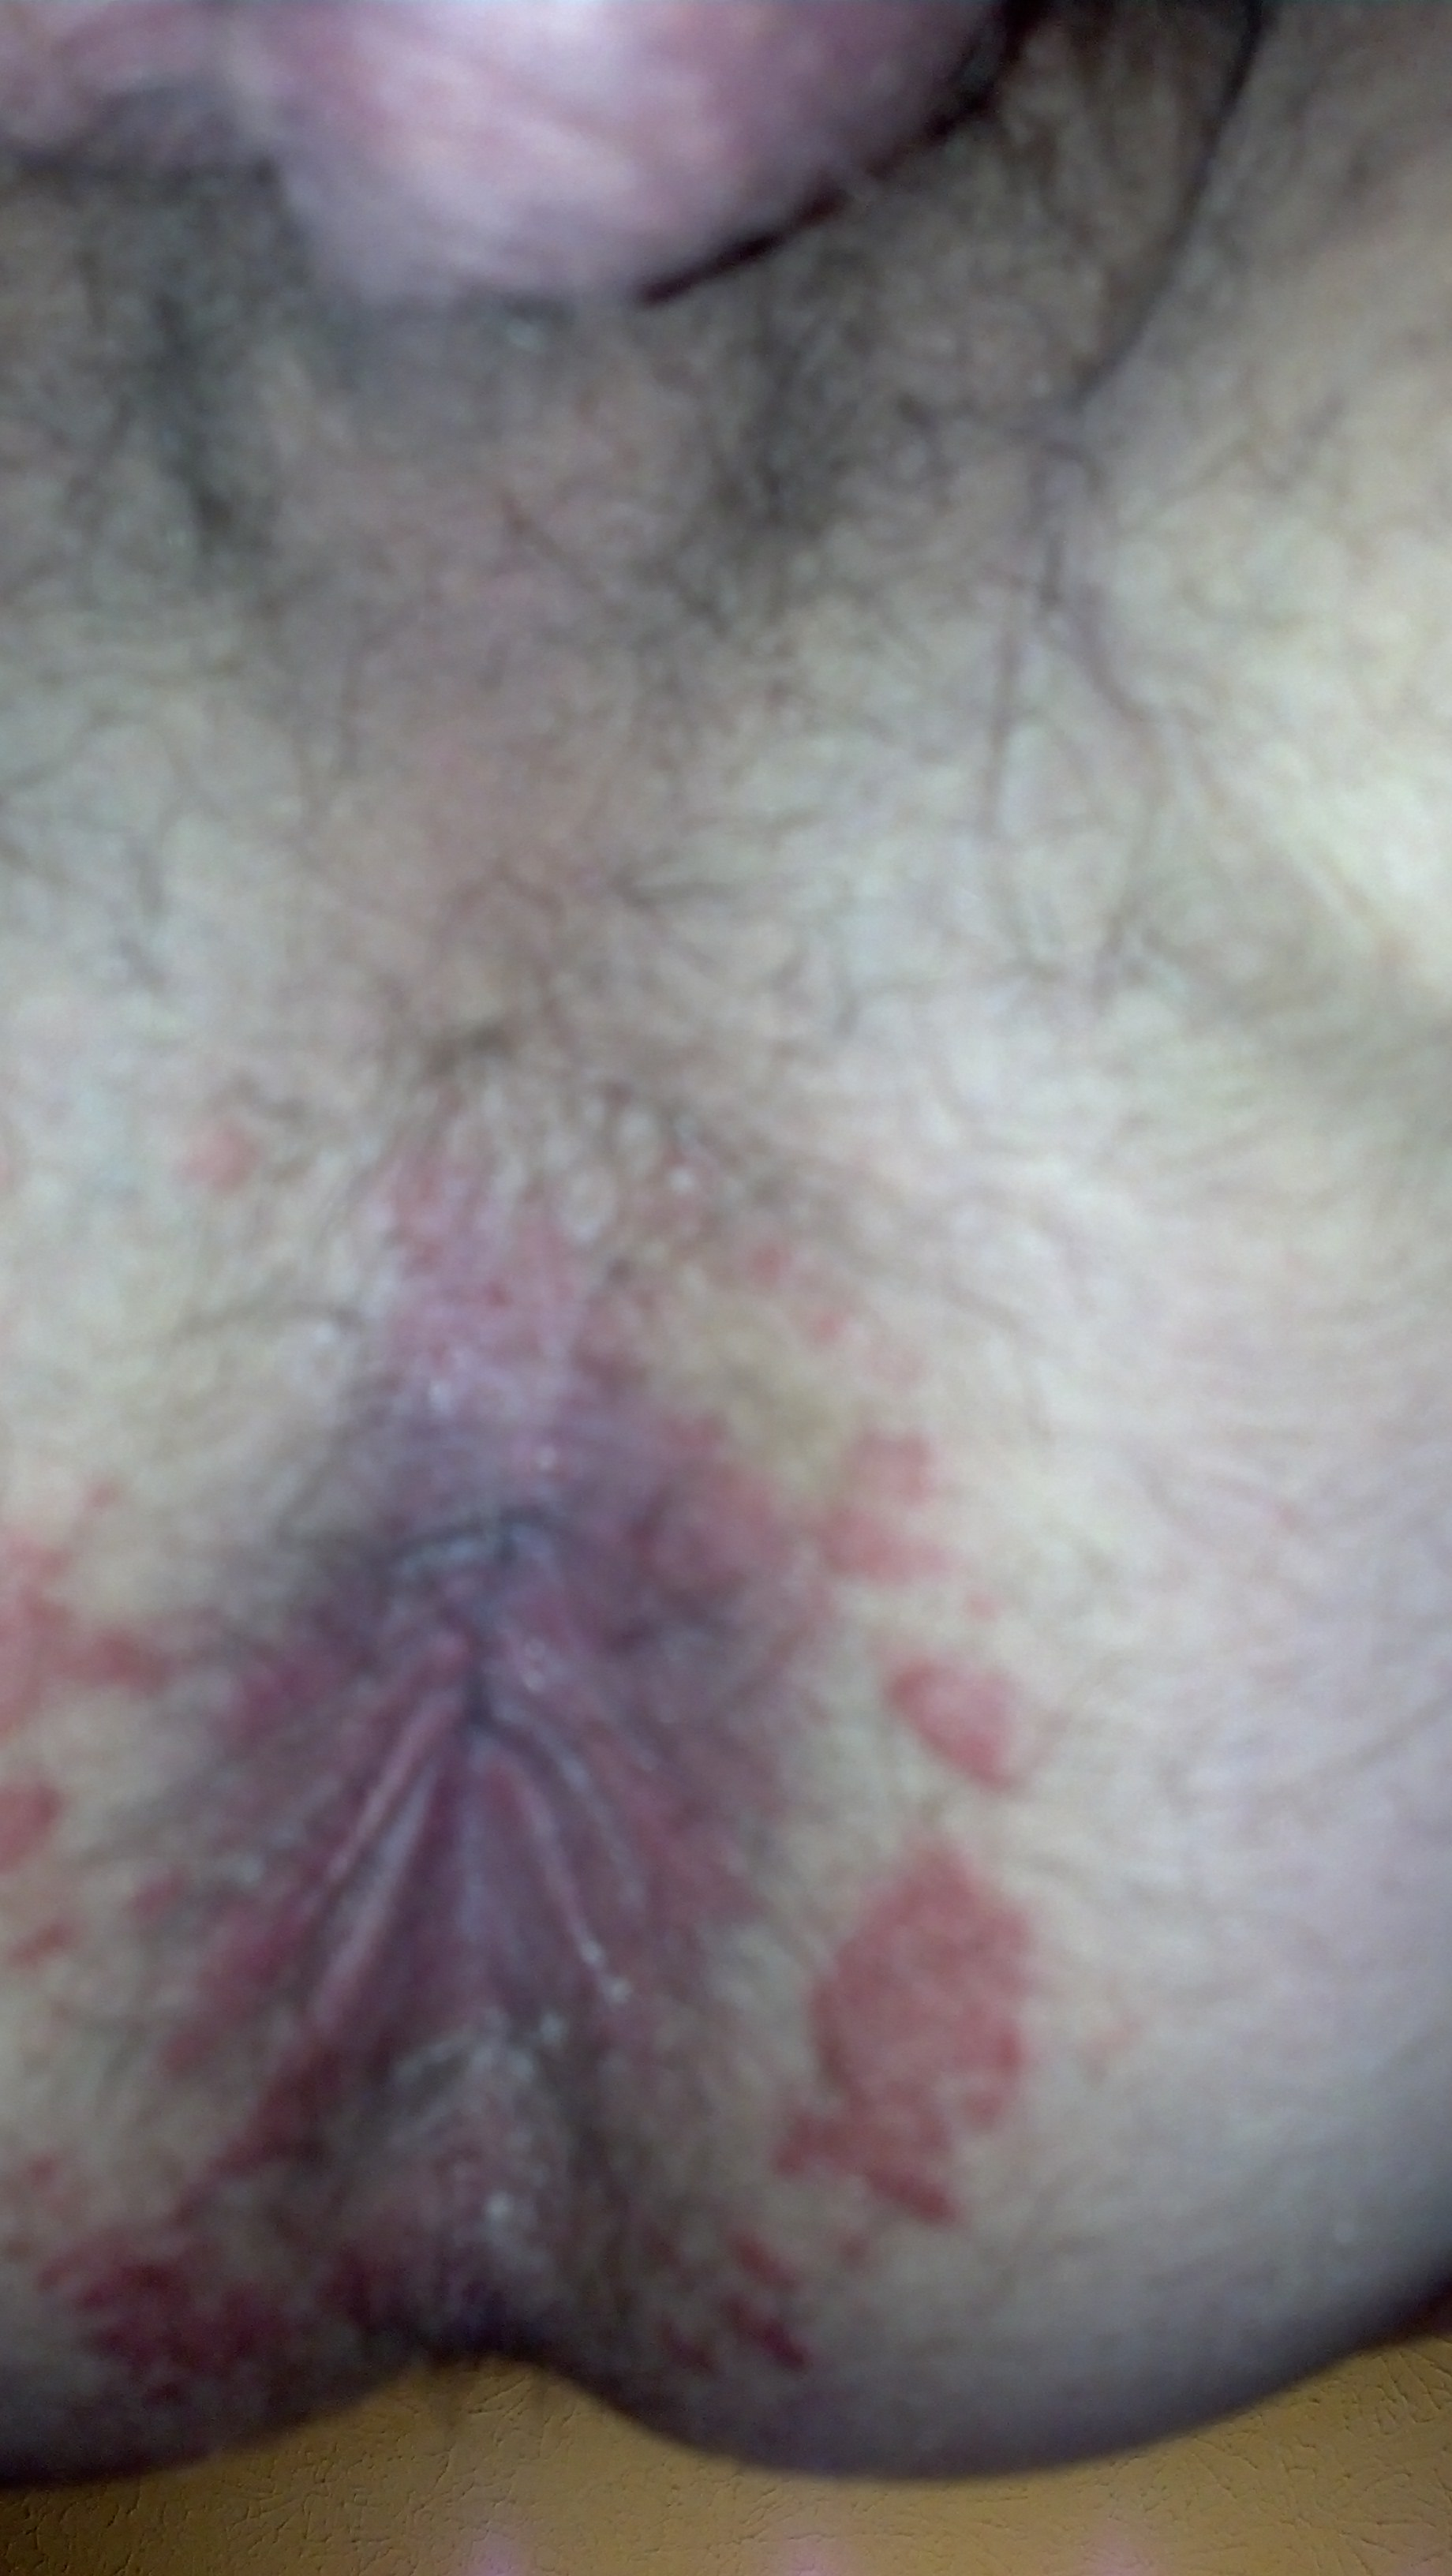 anal infection and itching